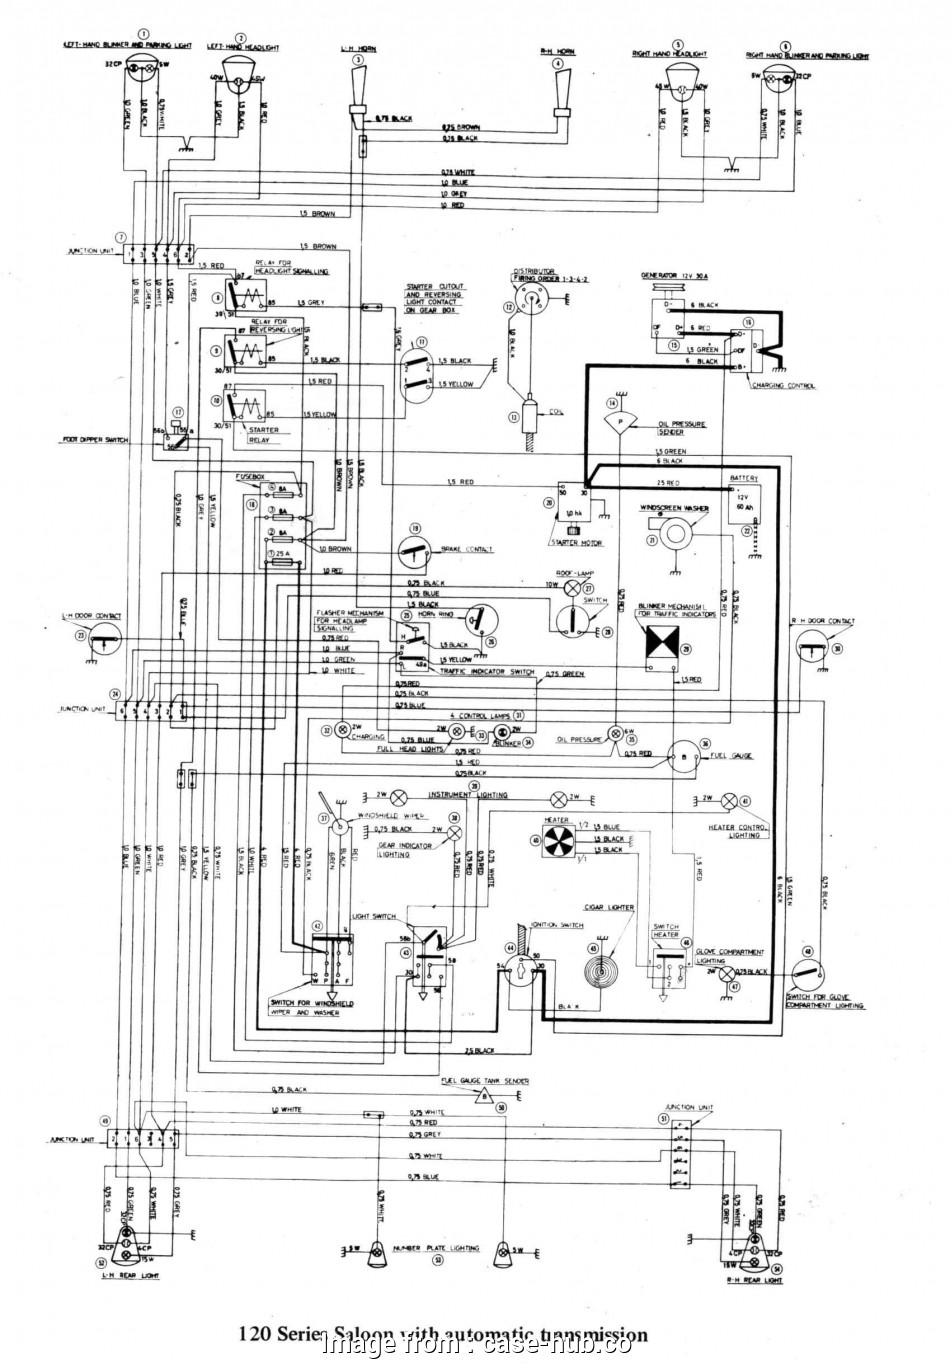 Easy Go Golf Cart Starter Generator Wiring Diagram. Melex ... Gas Golf Cart Lights Wiring Diagram on